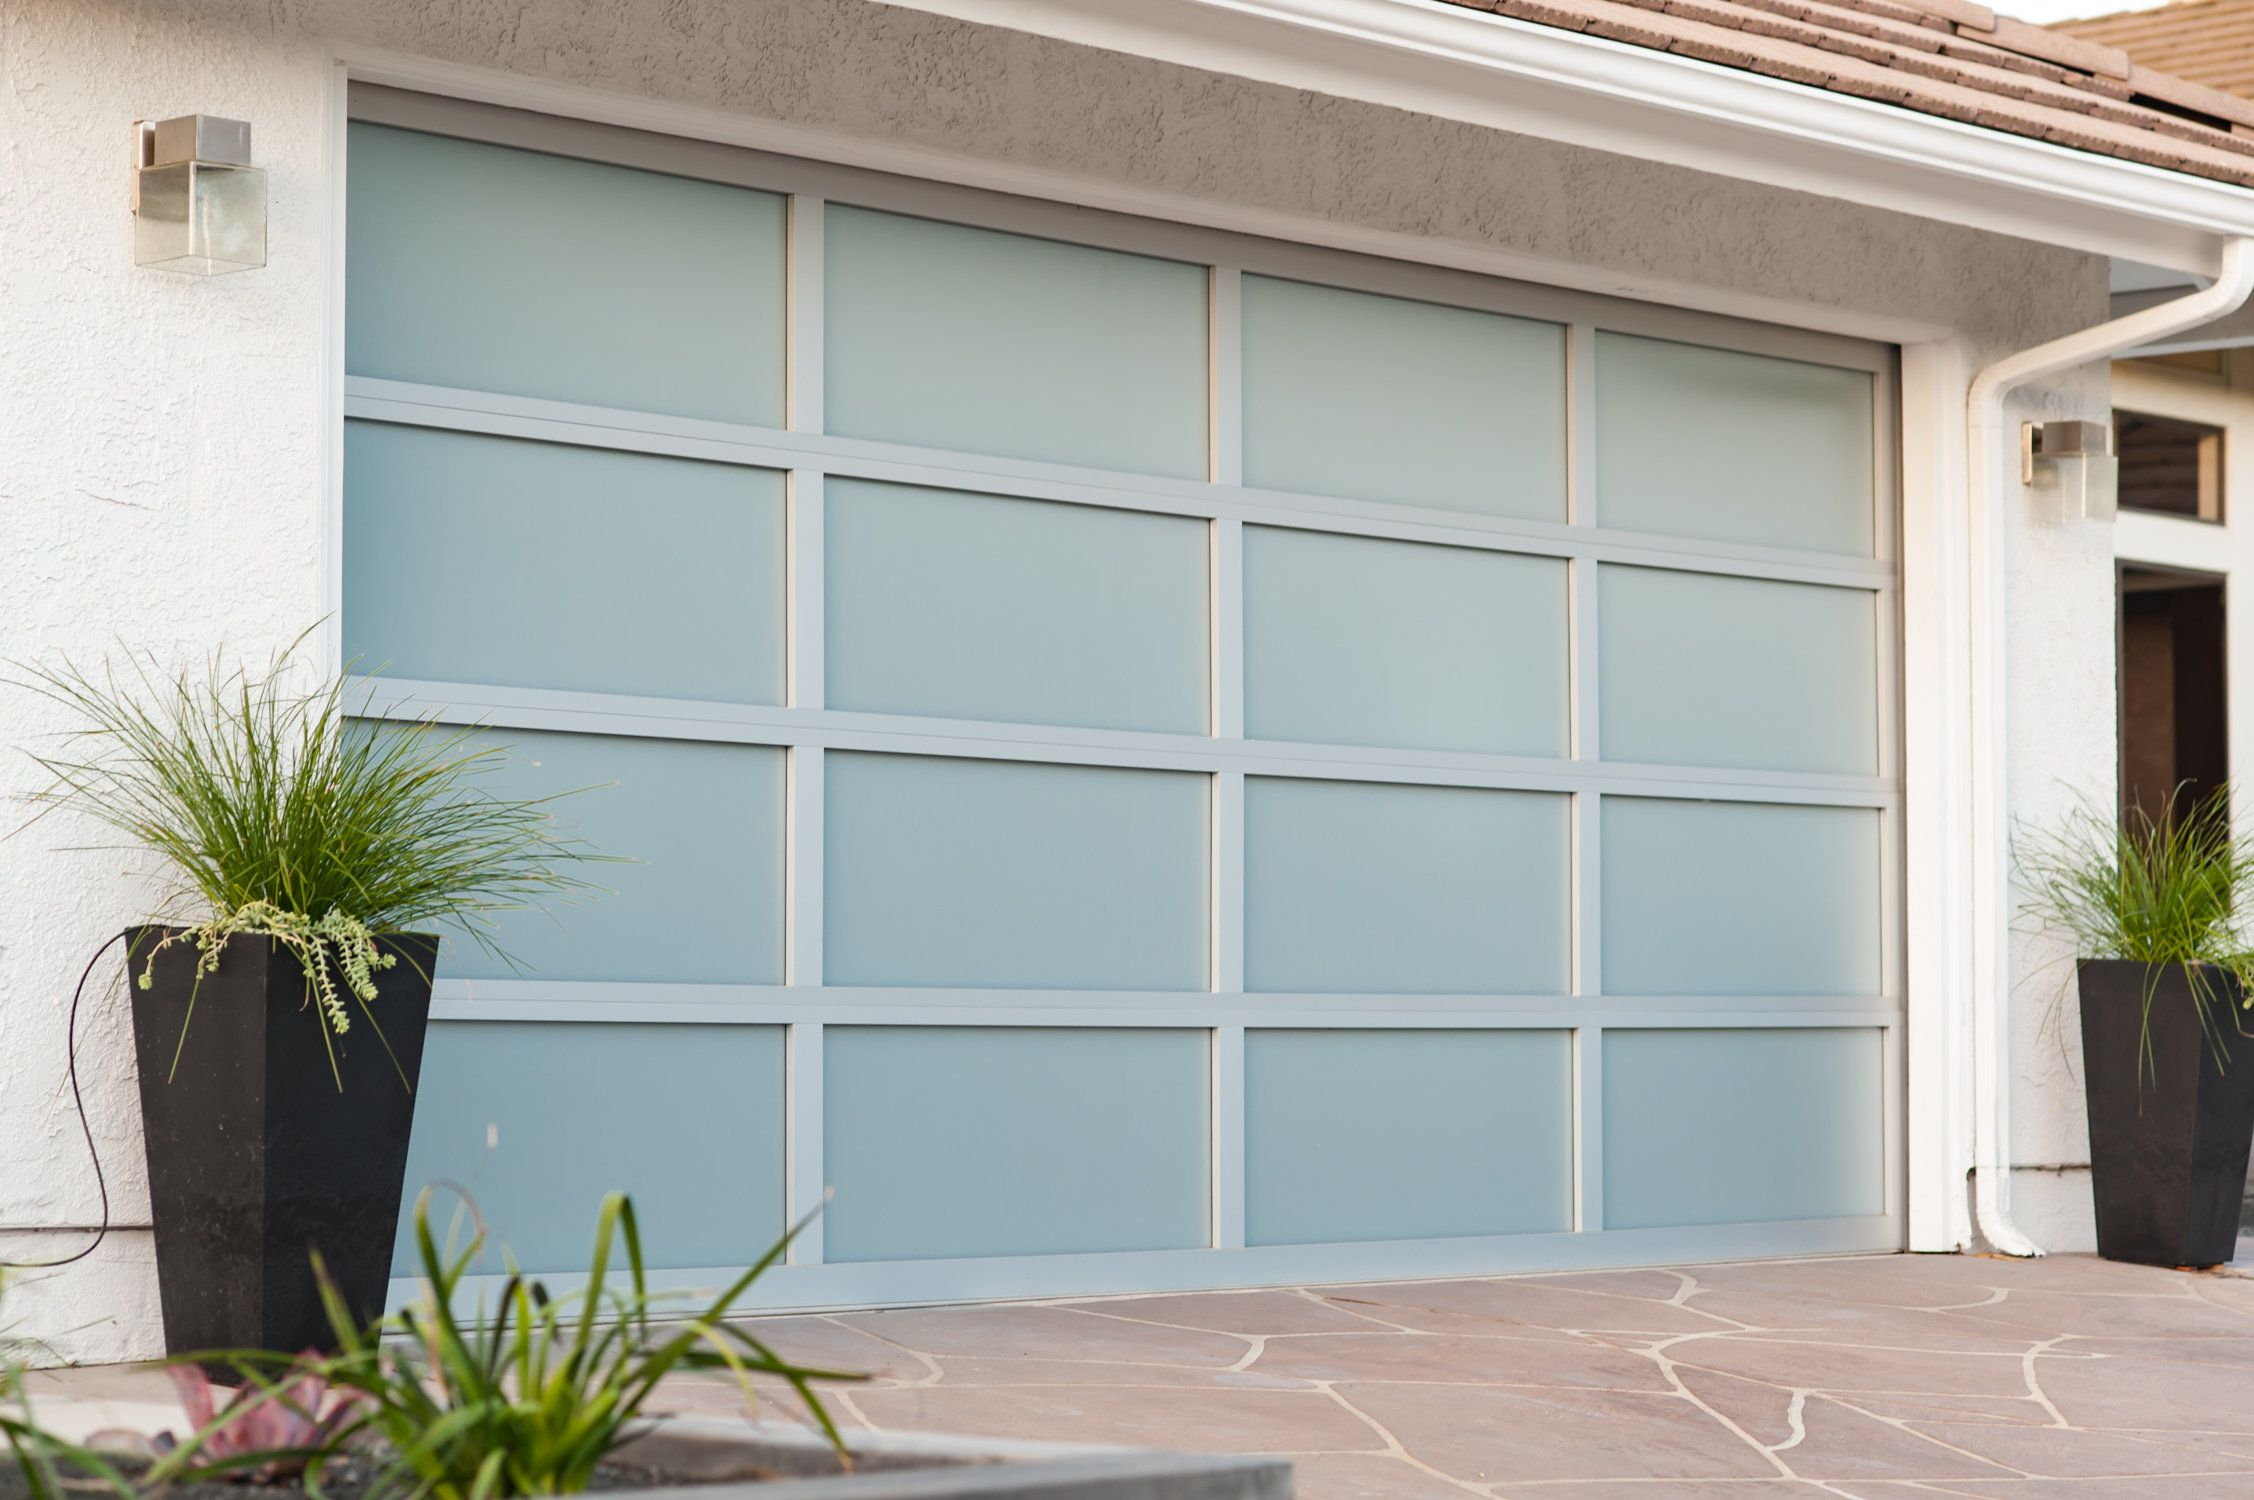 Eye Catching Garage Door Steel Garage Doors Garage Doors Wayne Dalton Garage Doors